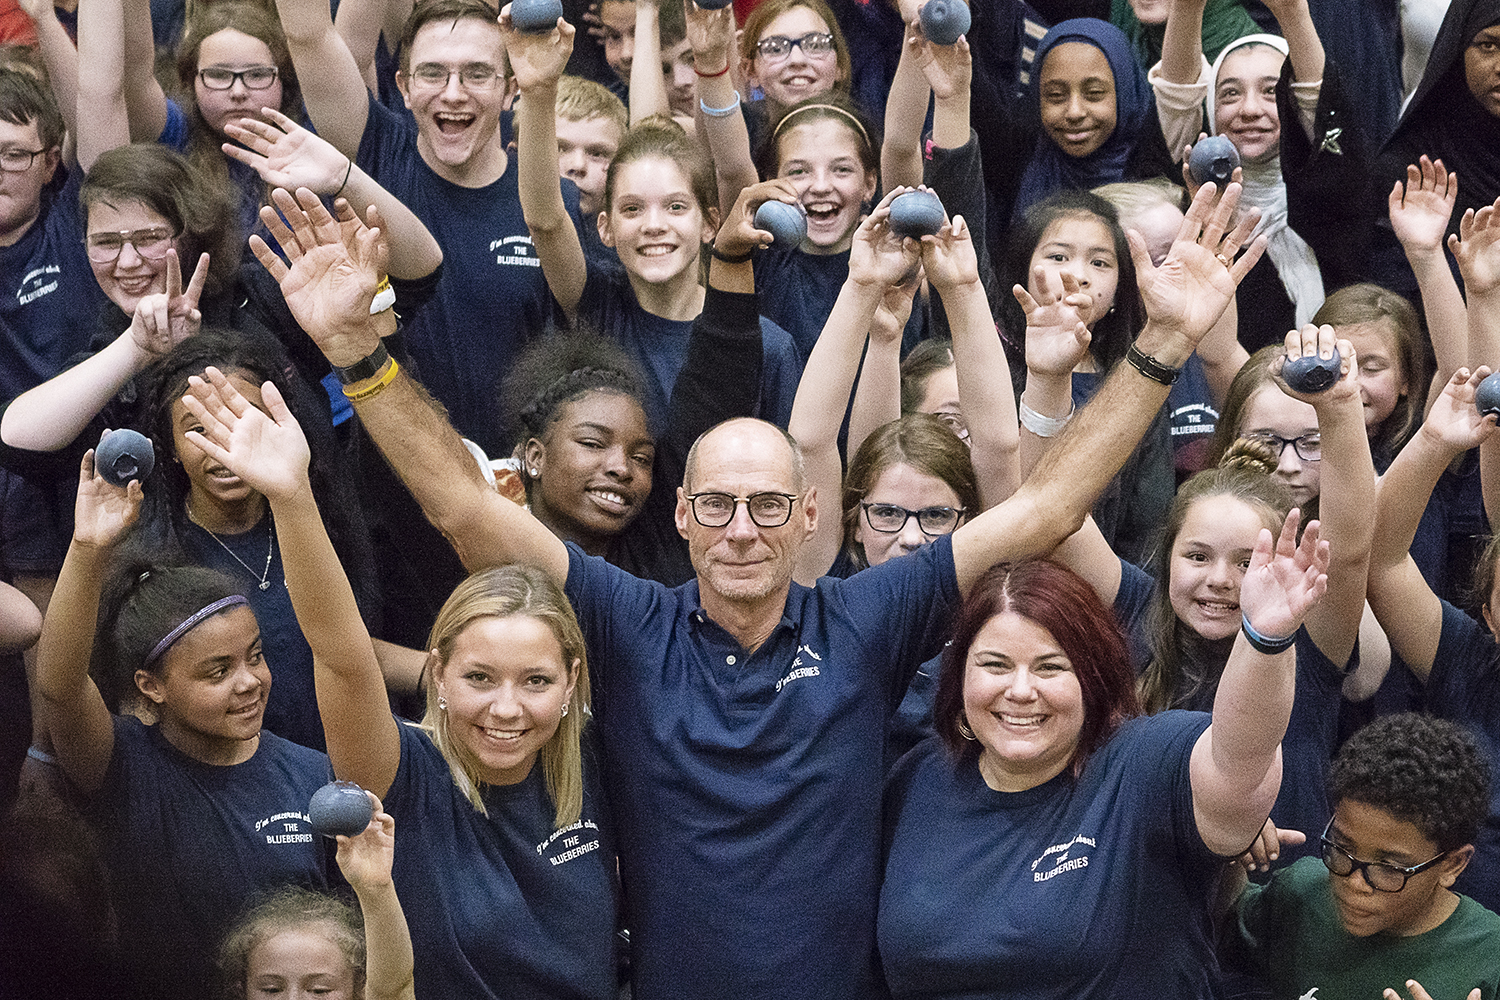 Flint, MI - Friday, May 4, 2018: Fenton Twp. resident and Blueberry Founder Phil Shaltz (center), 69, University of Michigan - Flint student Carryn White (left), 19, from Burton and FlintSide publisher Marjory Raymer (right), 44, from Flint, hold their hands up alongside the Blueberry Ambassadors for a group photograph after the 5th Annual Blueberry Ambassador Awards Party at the Riverfront Banquet Center downtown.